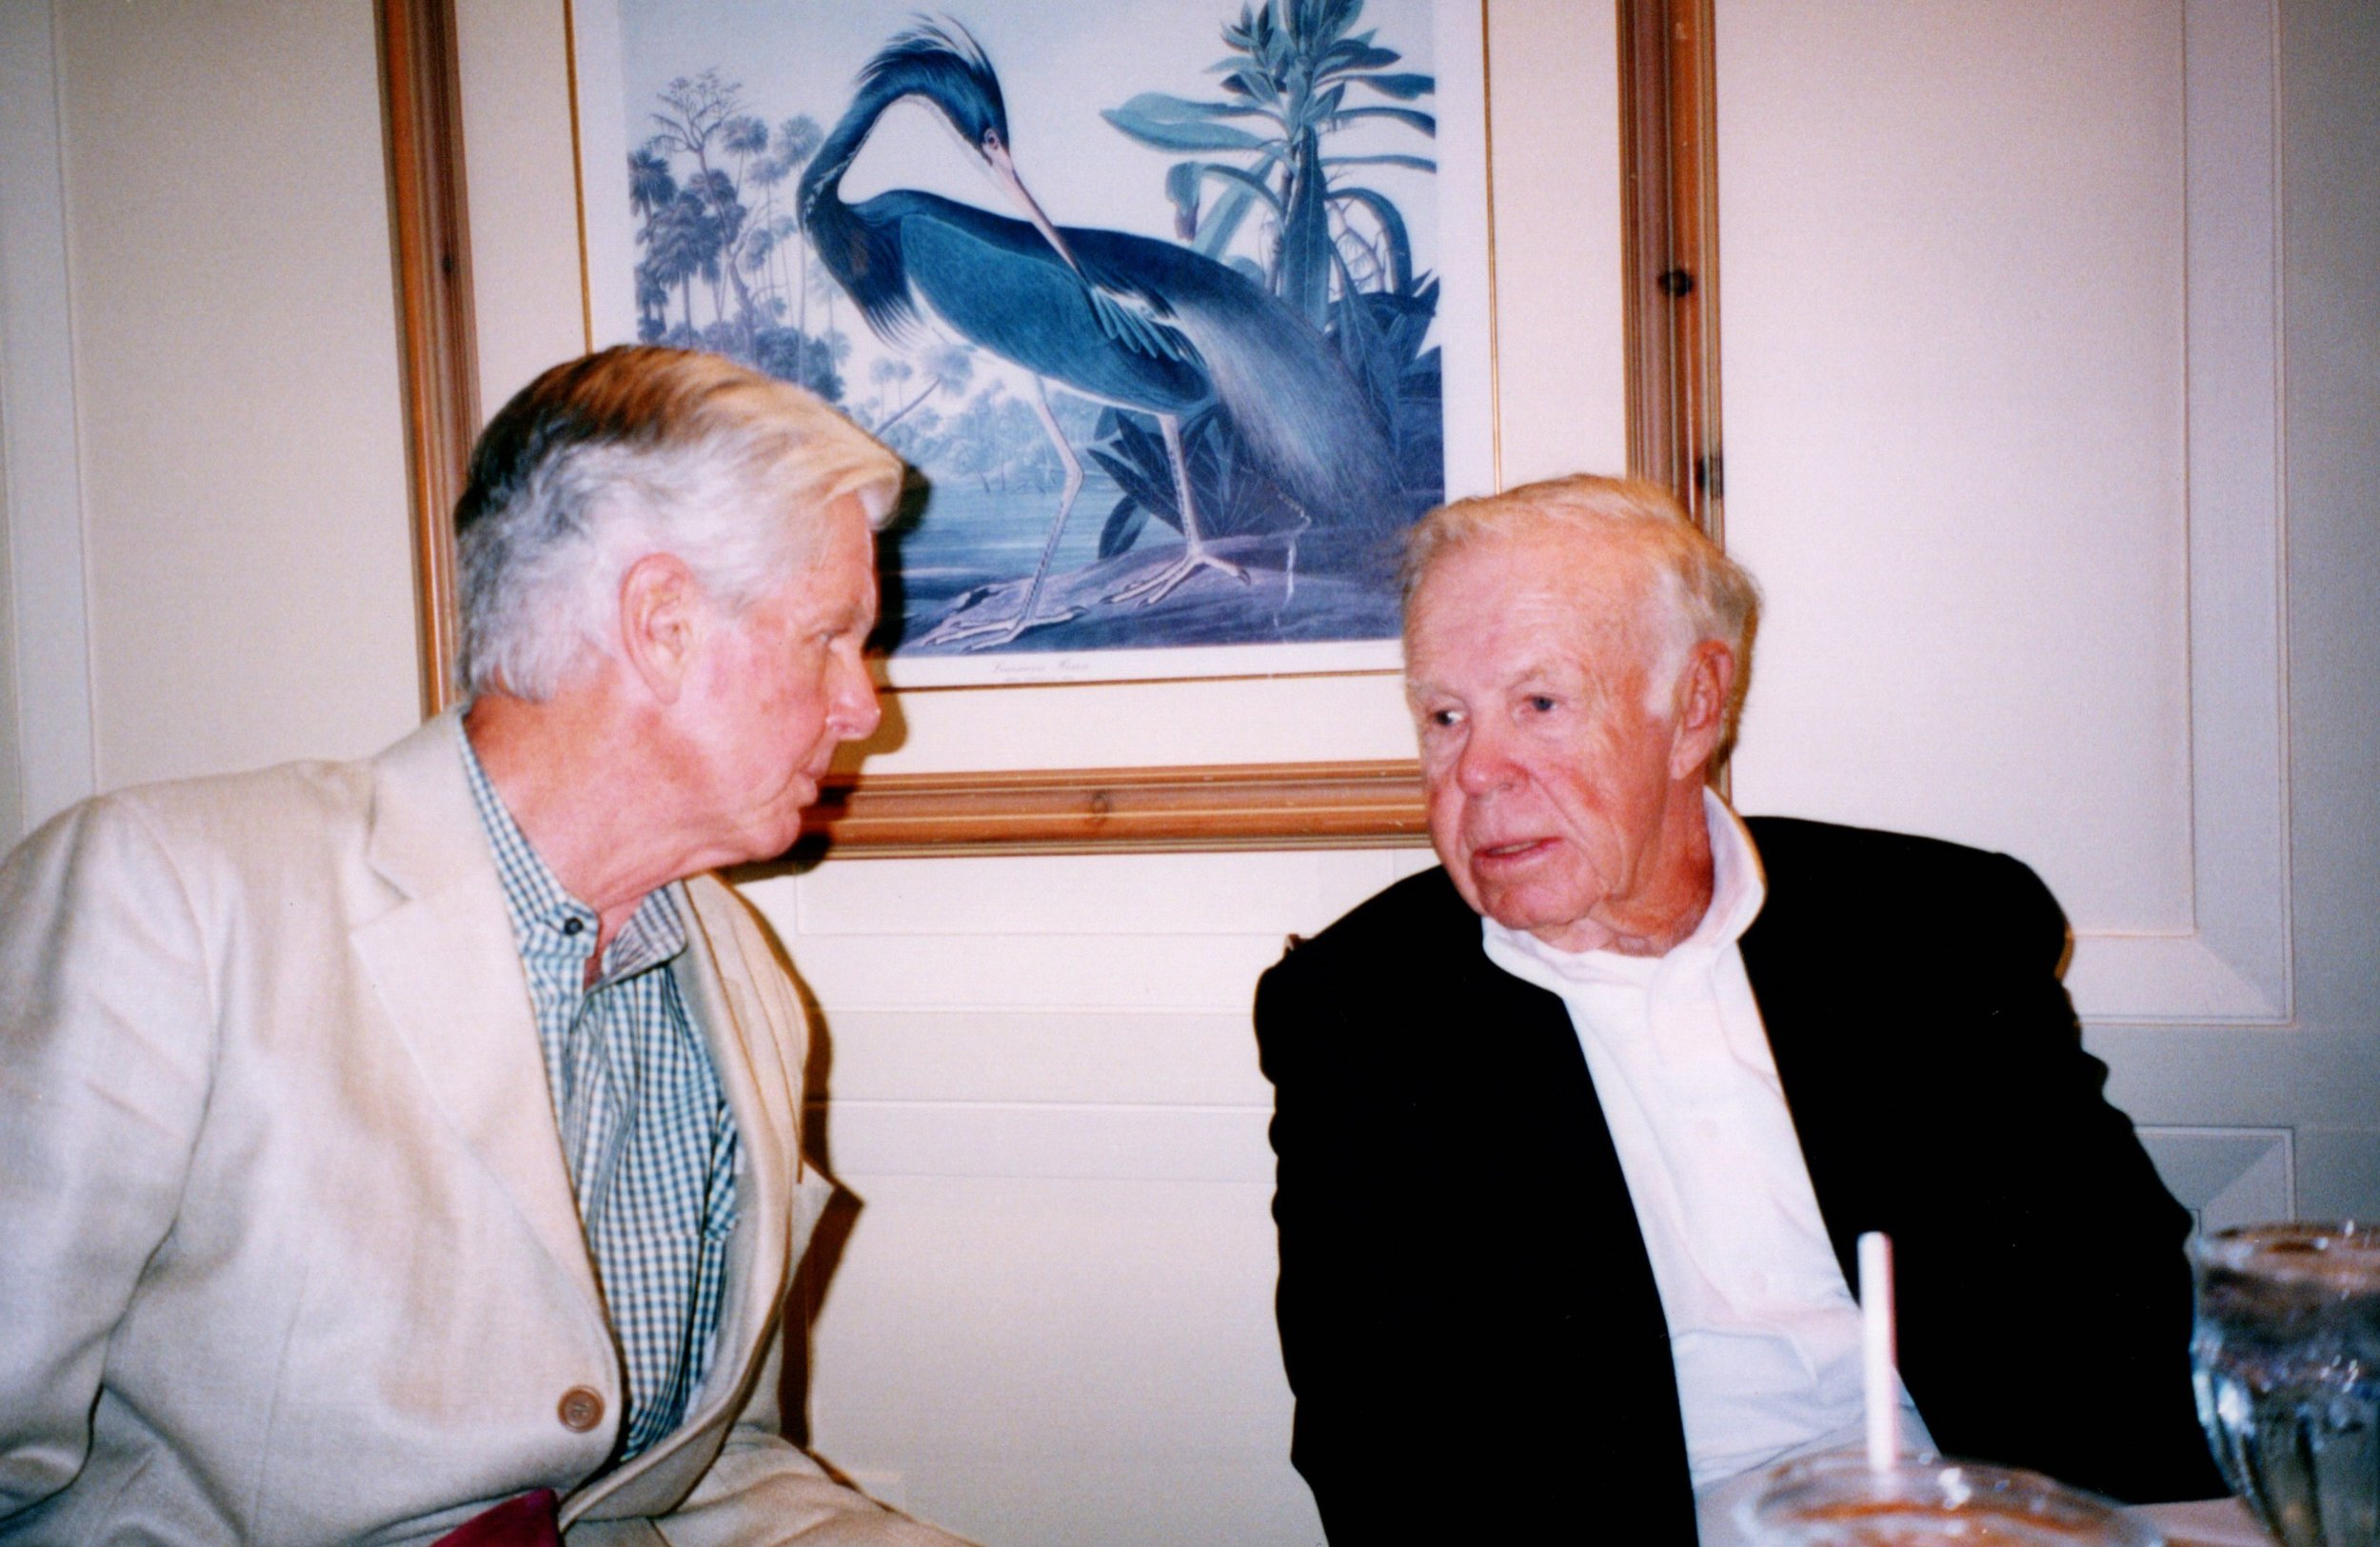 3_11_2004 - COACH SIEDLECKI LUNCHEON - ROYAL POINCIANA C.C. 7.jpg